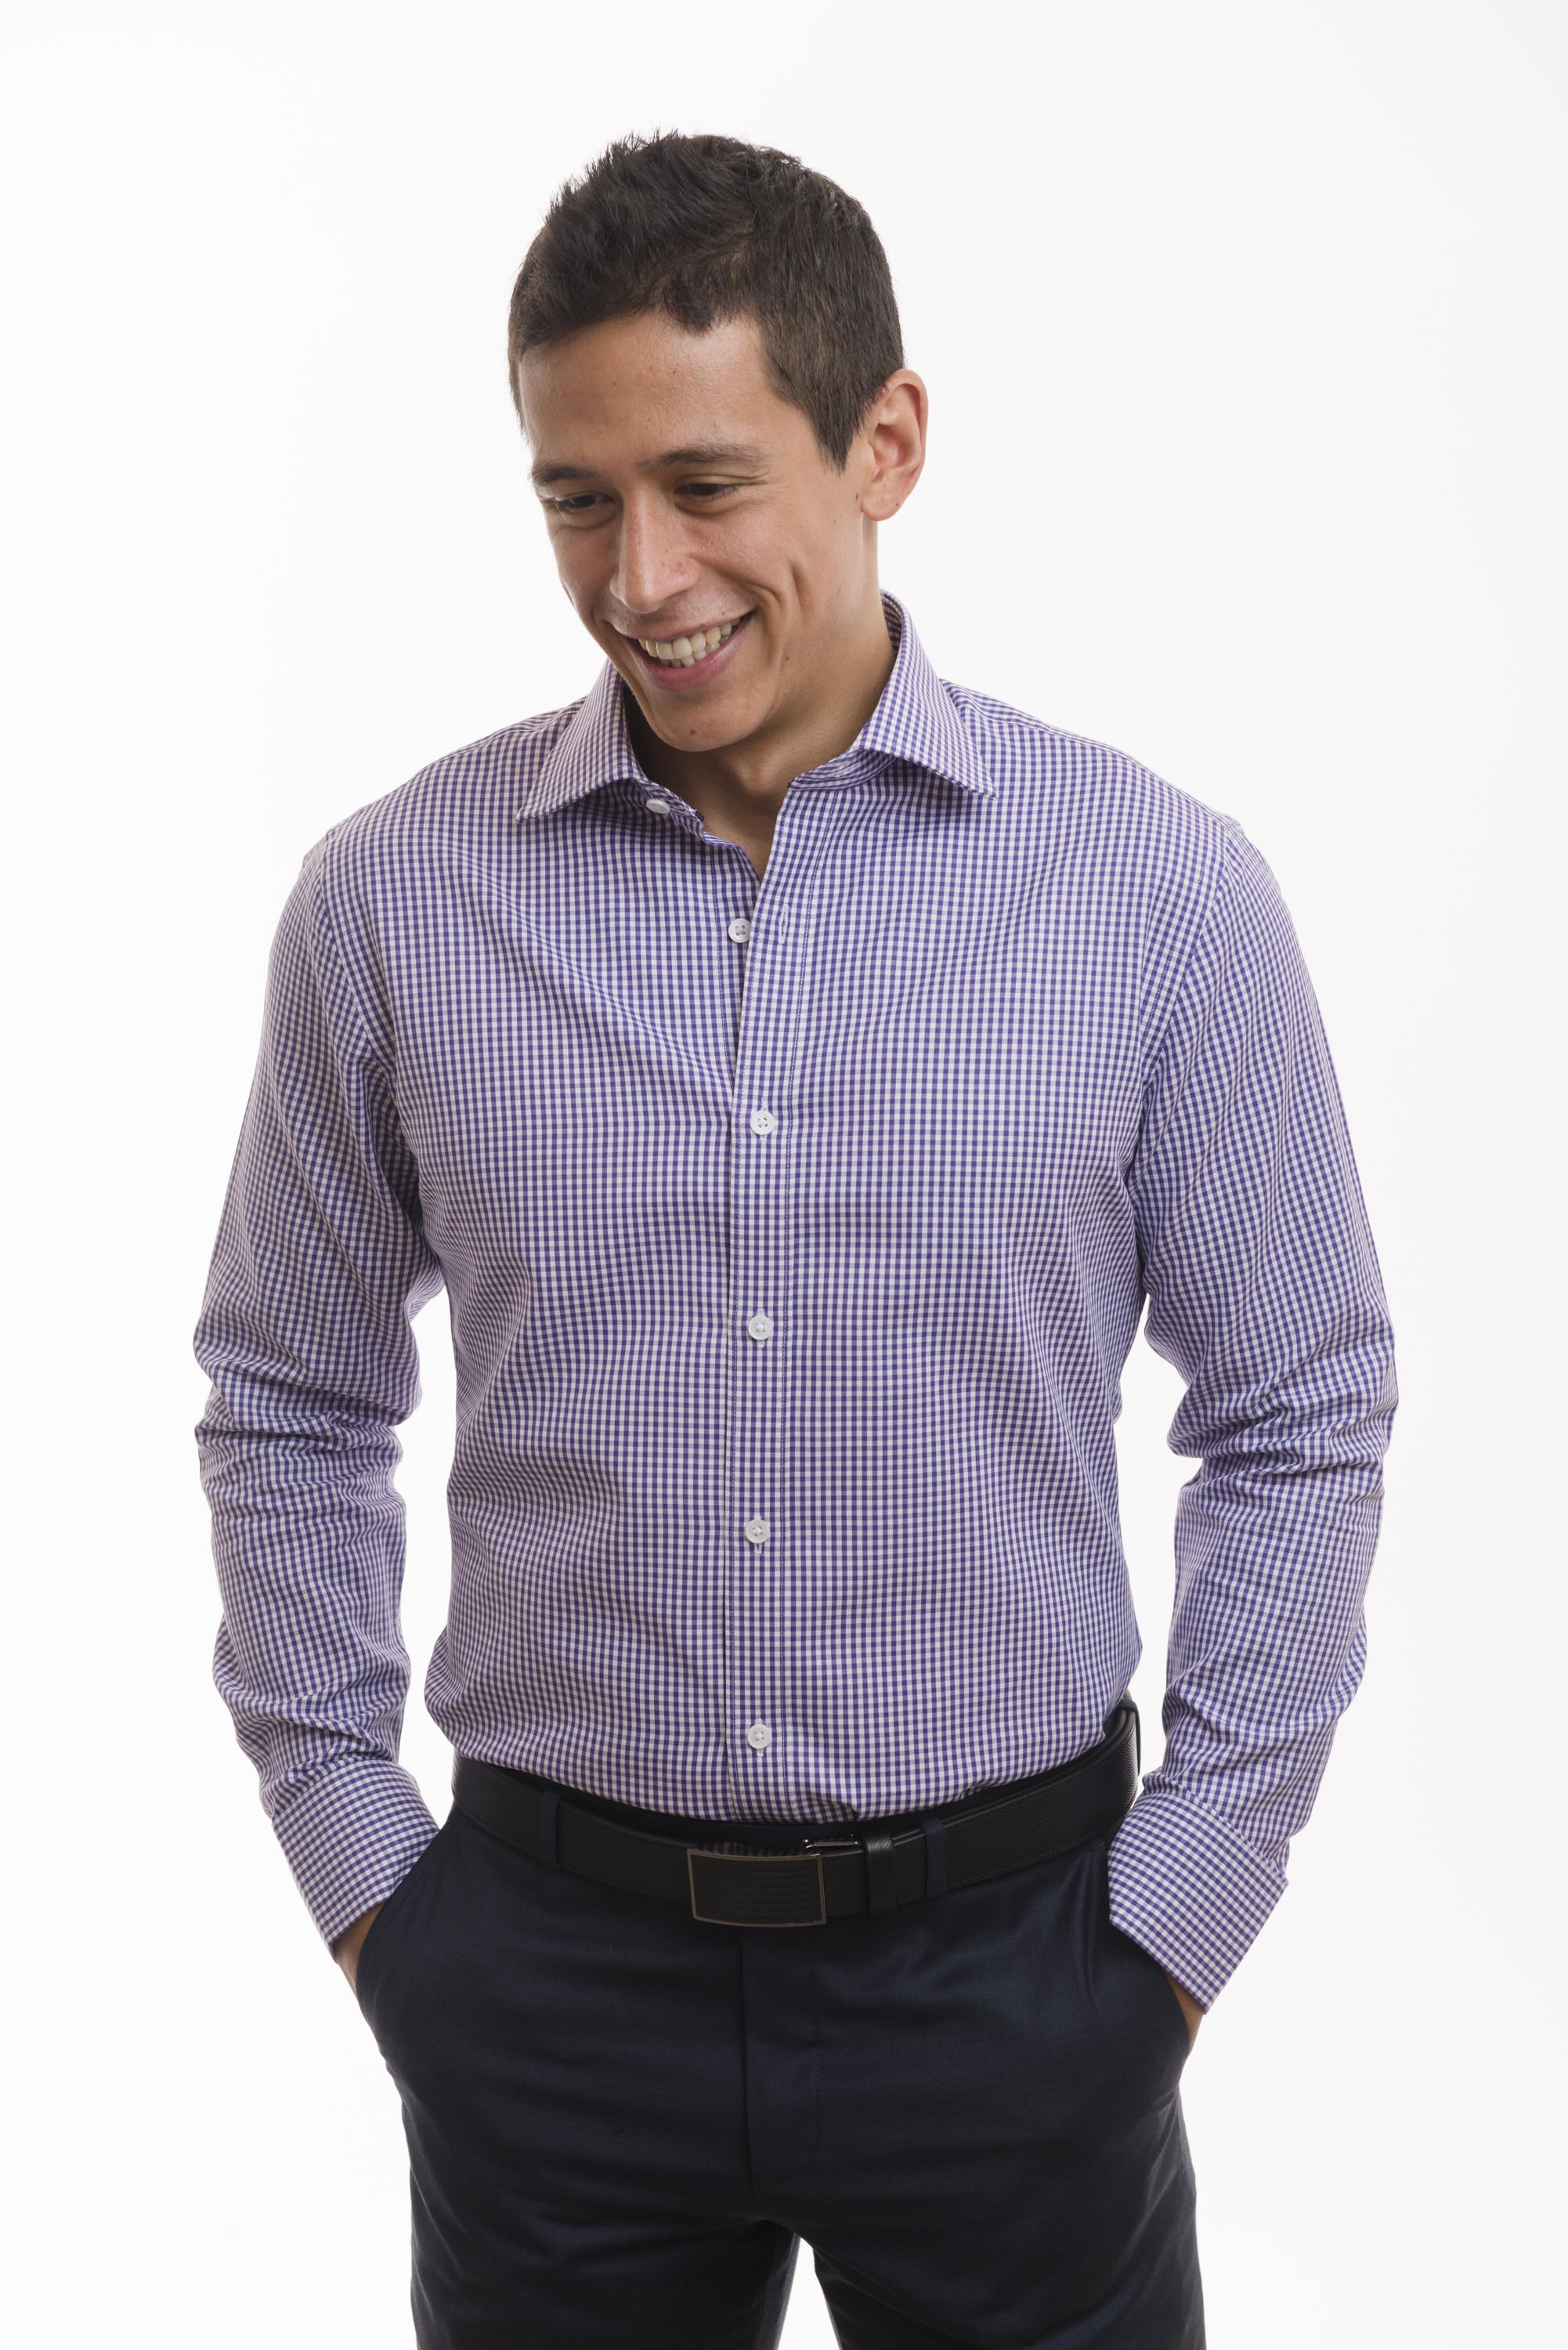 LXN Purple Gingham Check Spread Collar Men's Dress Shirts